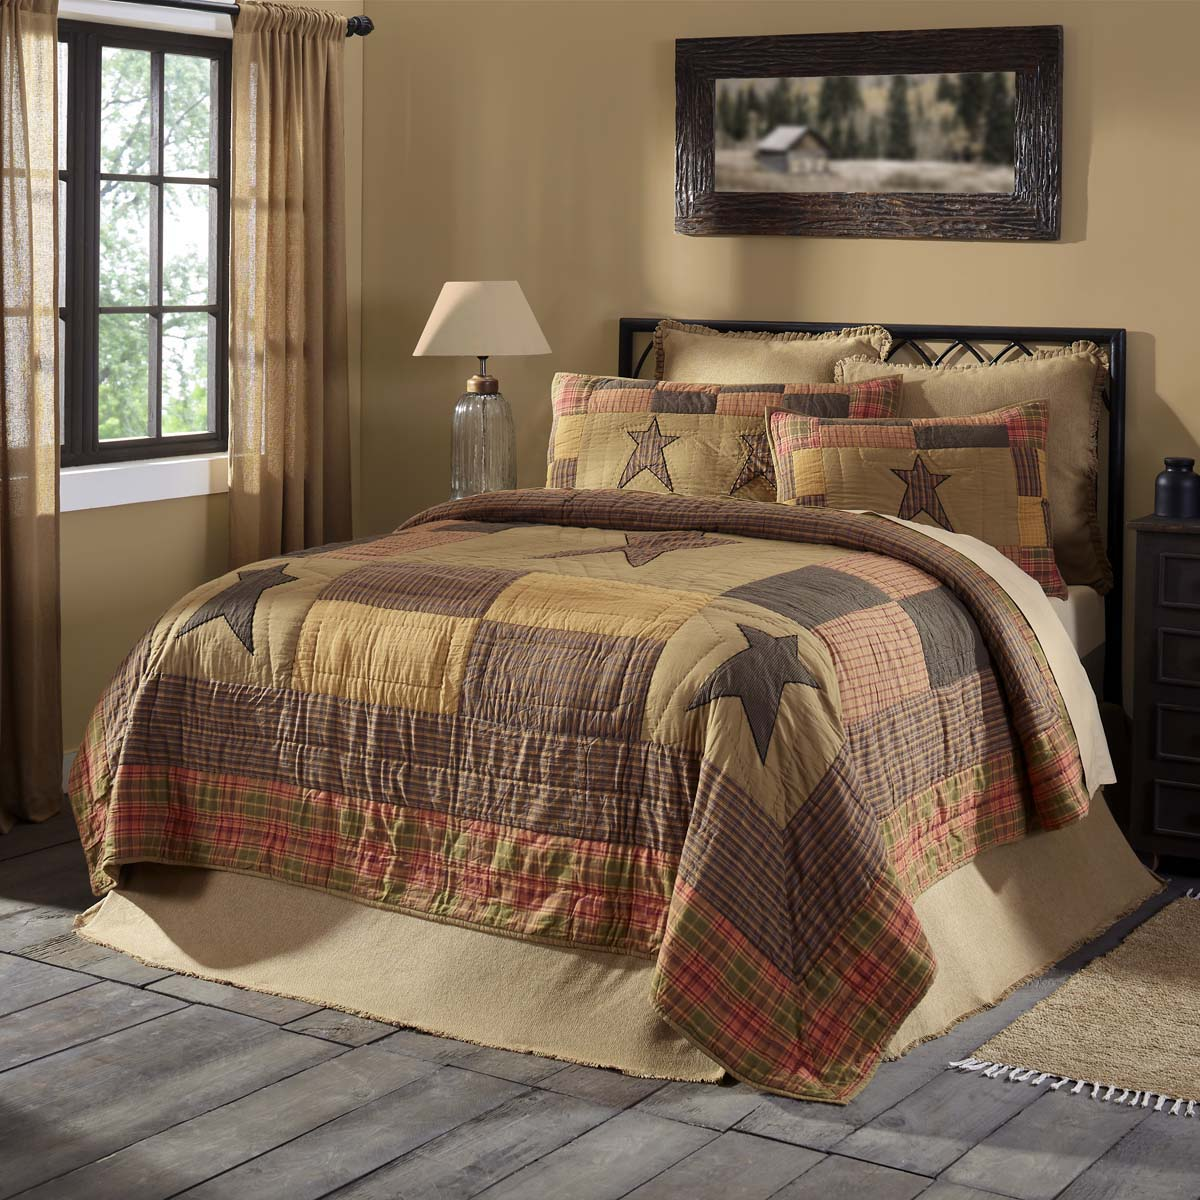 Stratton Luxury King Quilt 120Wx105L - Woodrol